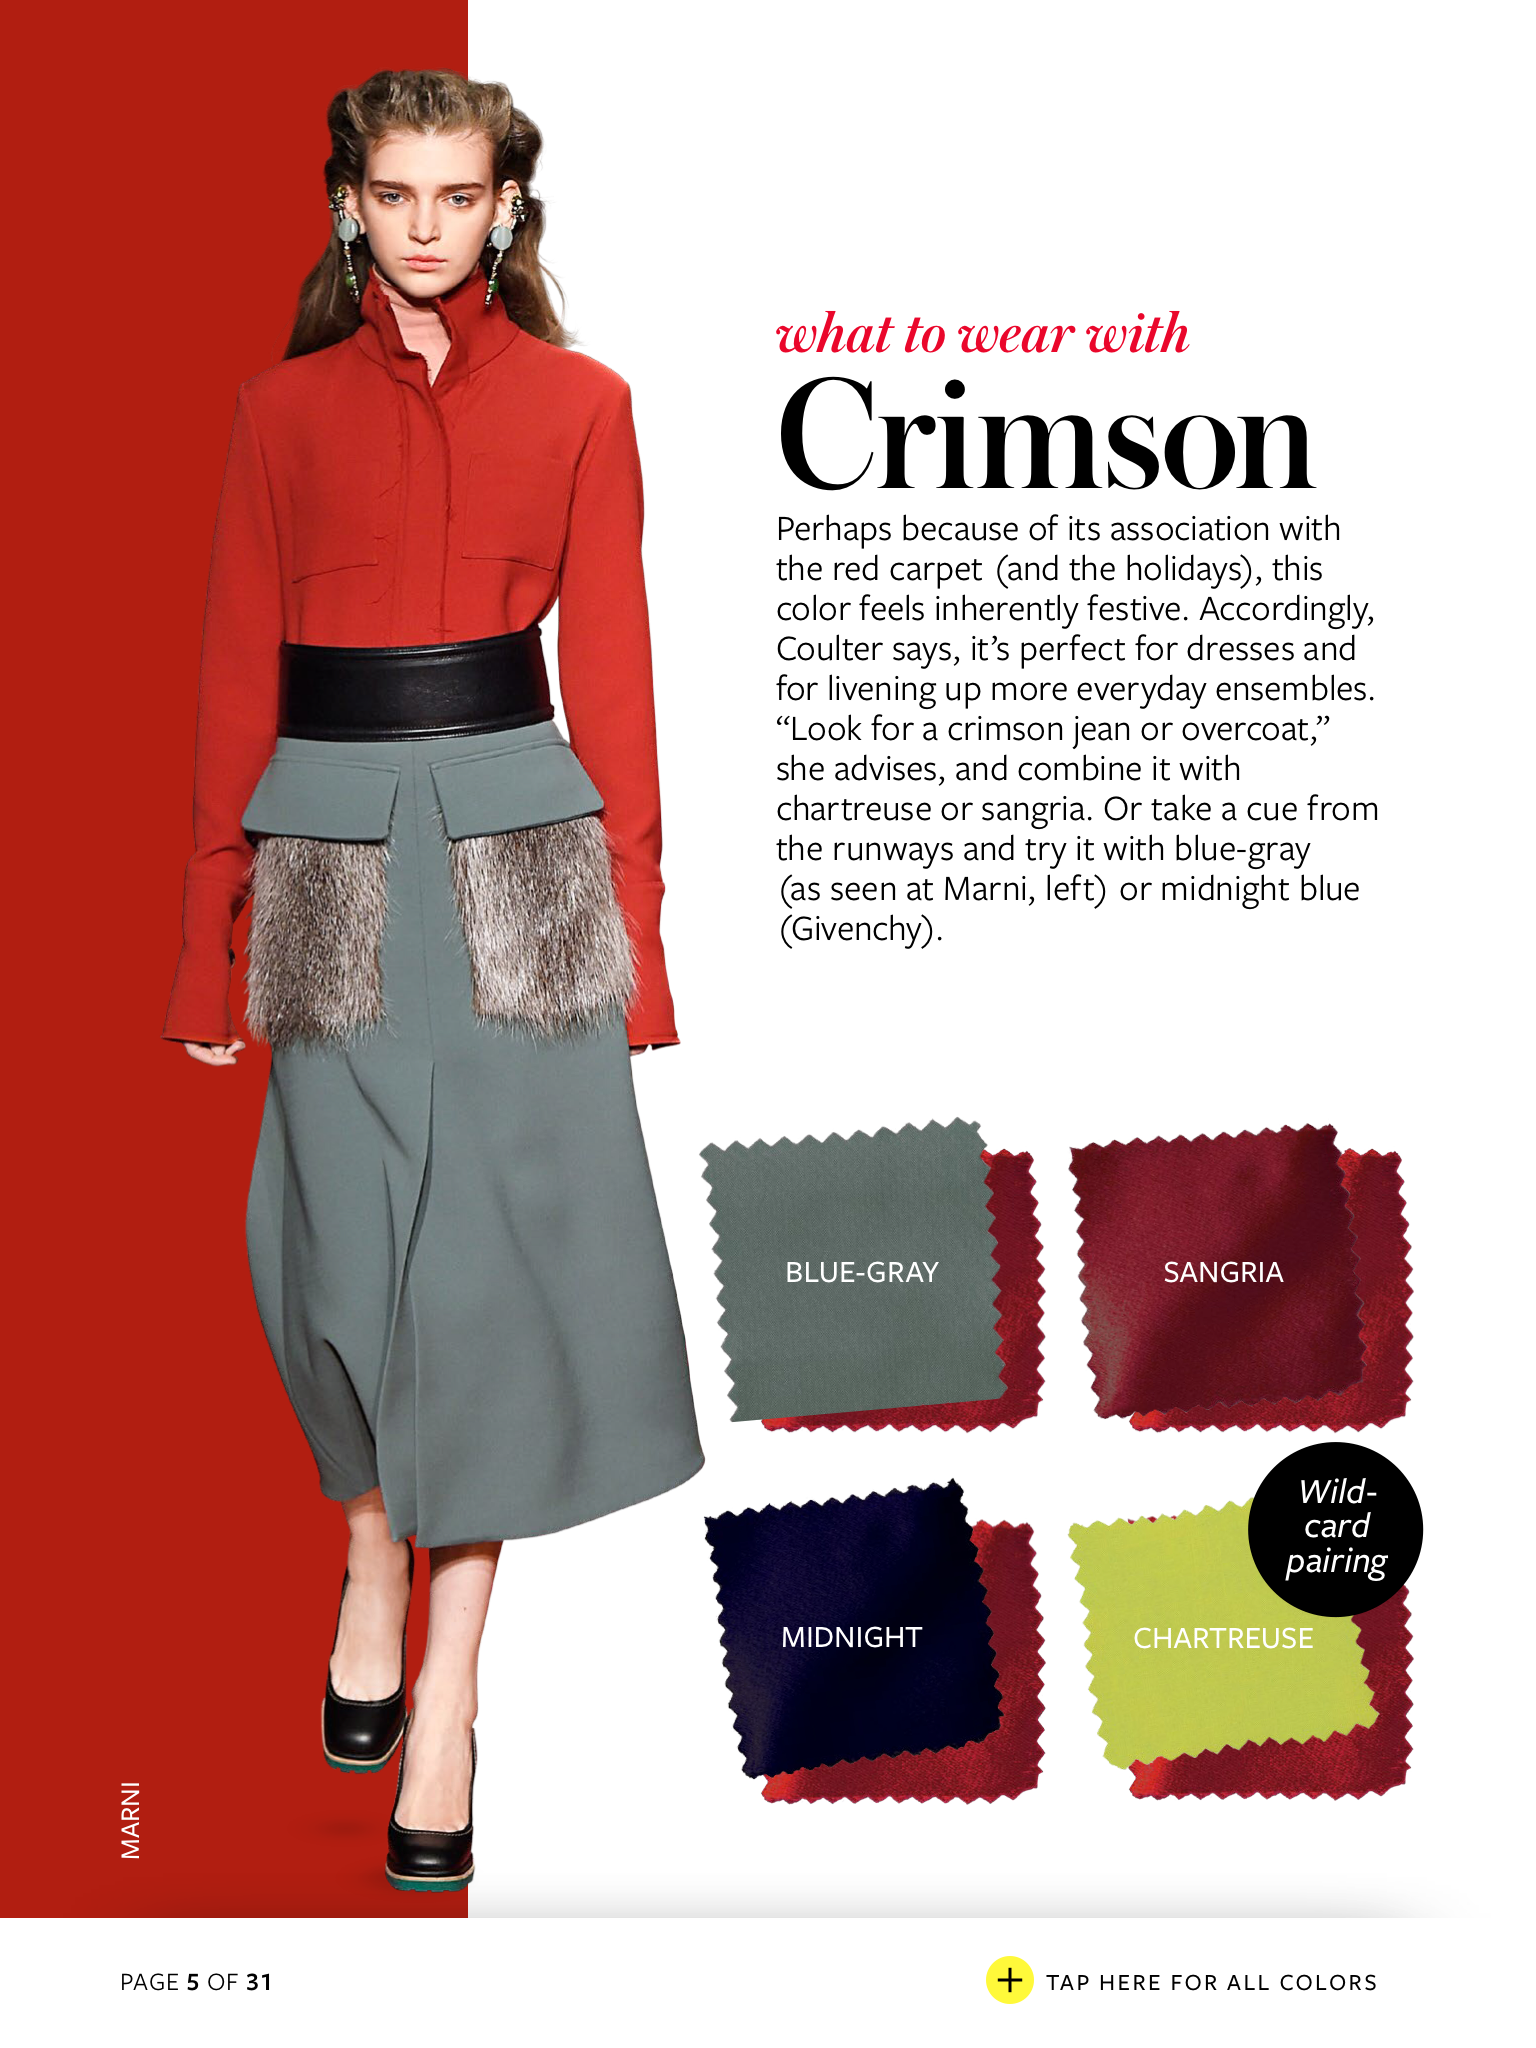 5 Beautiful Outfit Color Combinations for the Holidays